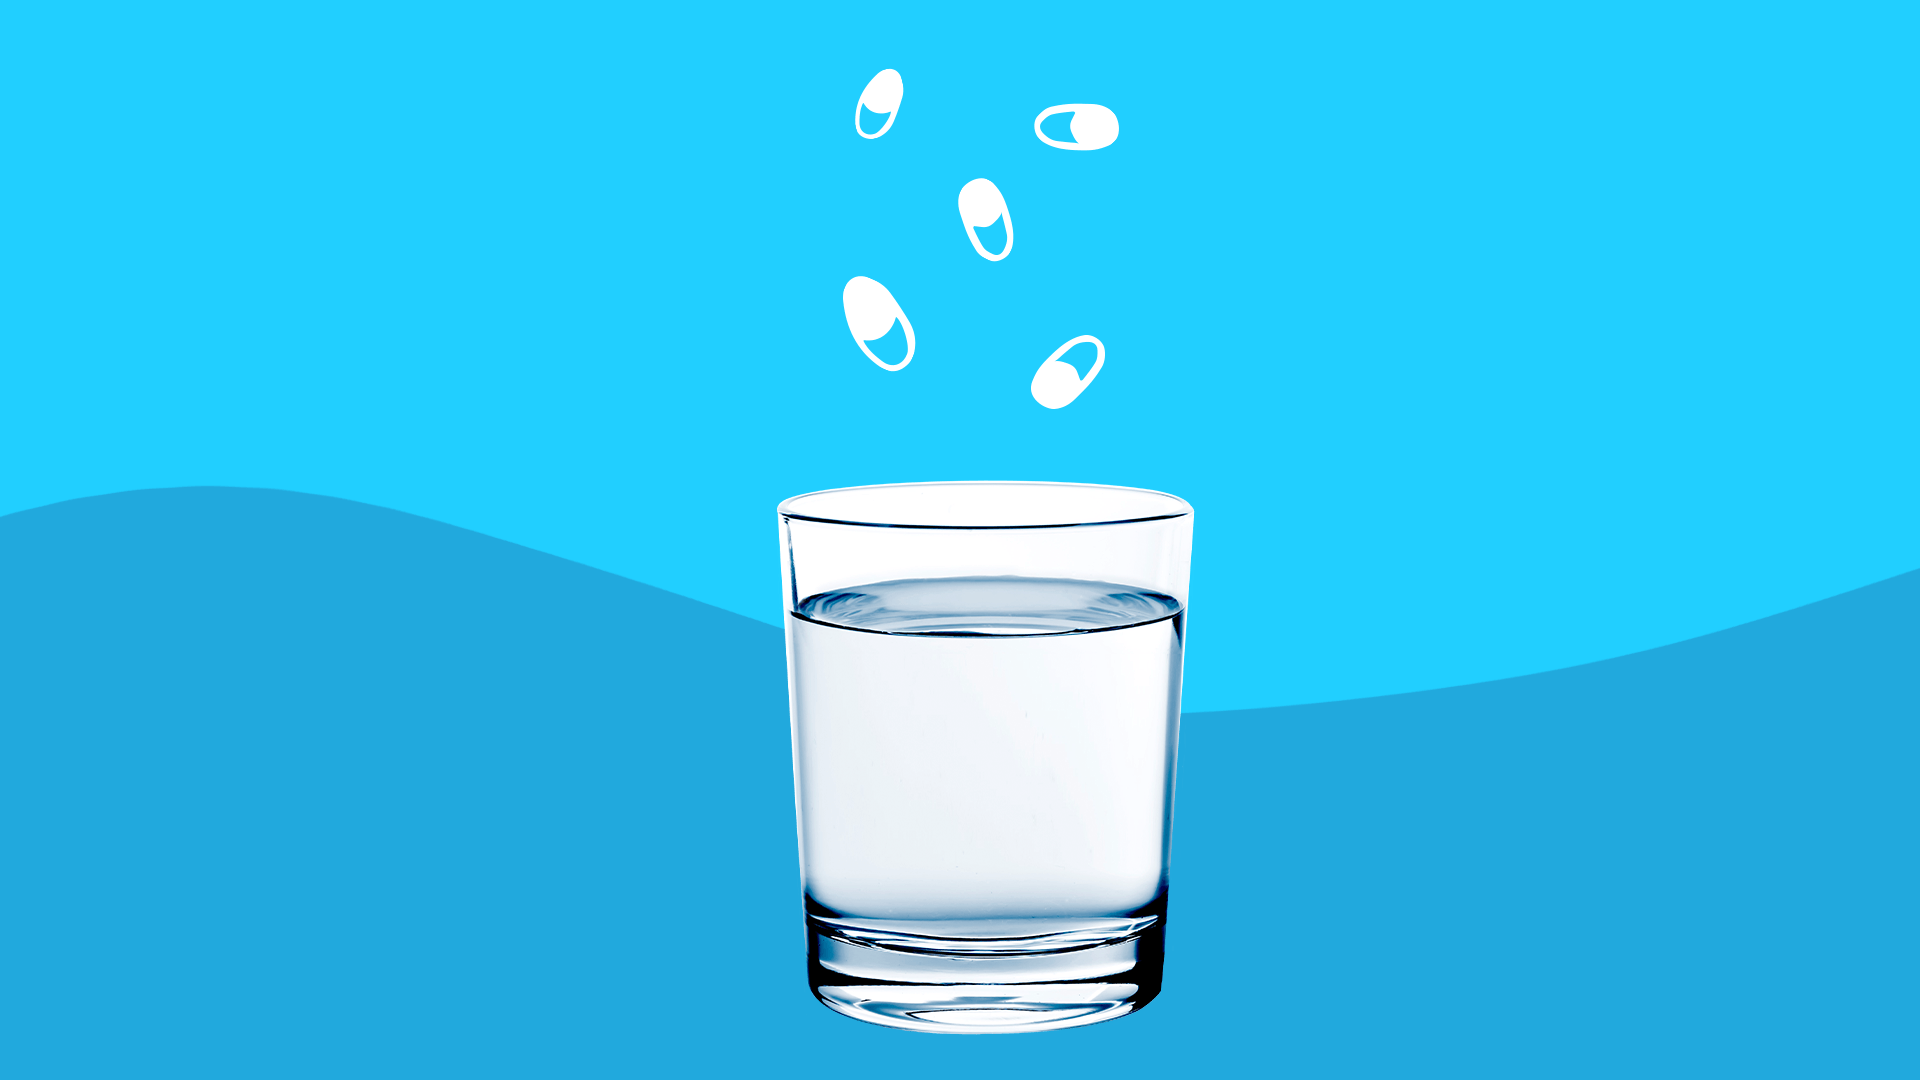 12 medications that cause dry mouth (and how to treat it)